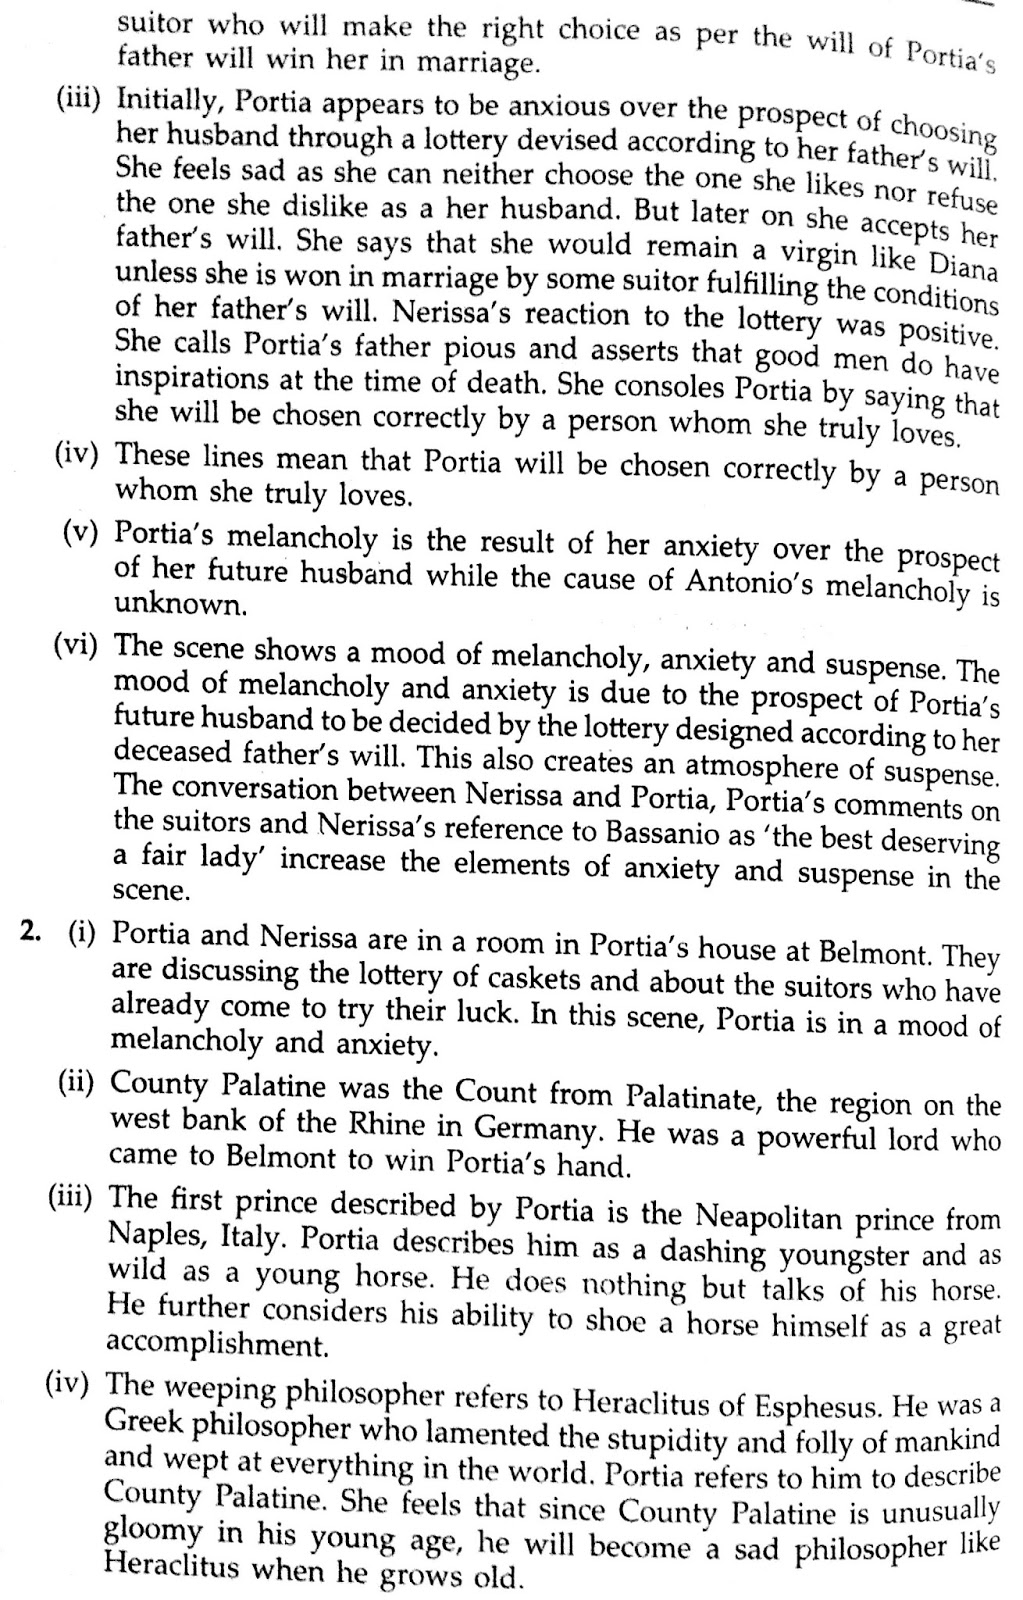 Workbook Answers/ Solutions in The Merchant of Venice, Act